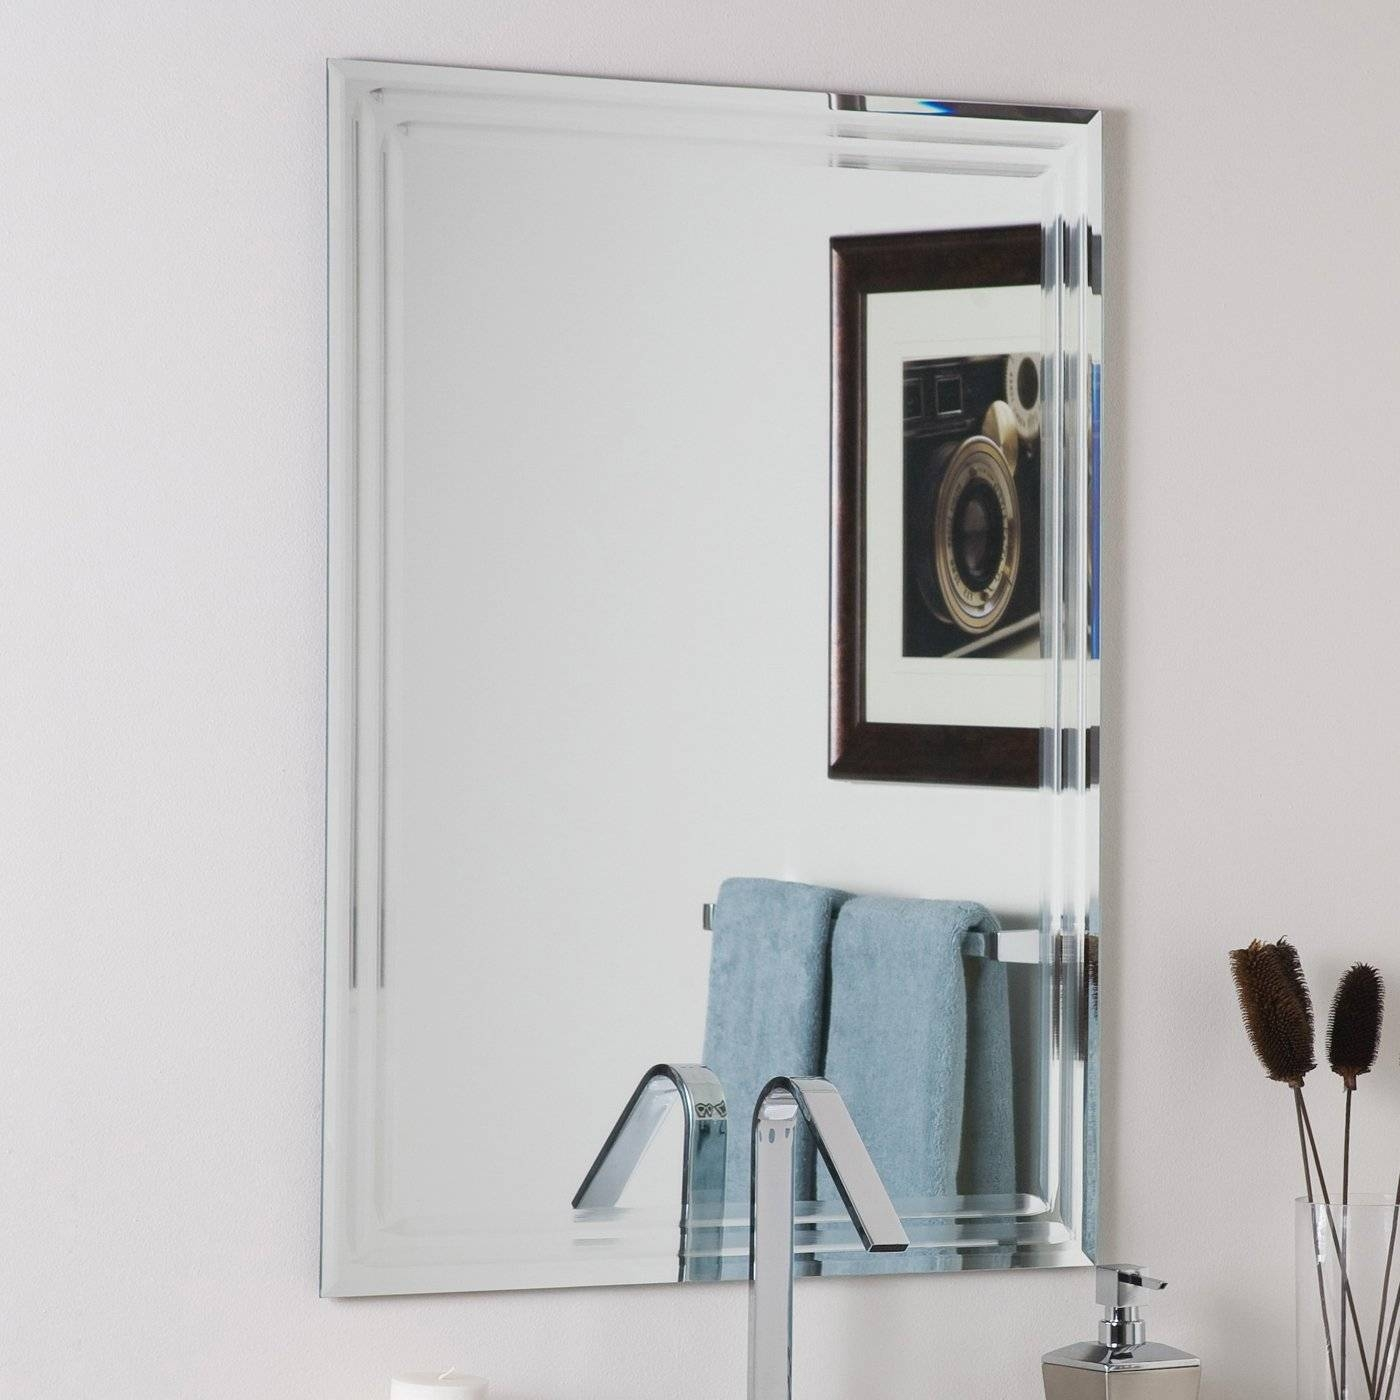 Beveled Bathroom Mirrors | Lowe's Canada regarding Bevelled Bathroom Mirrors (Image 8 of 15)